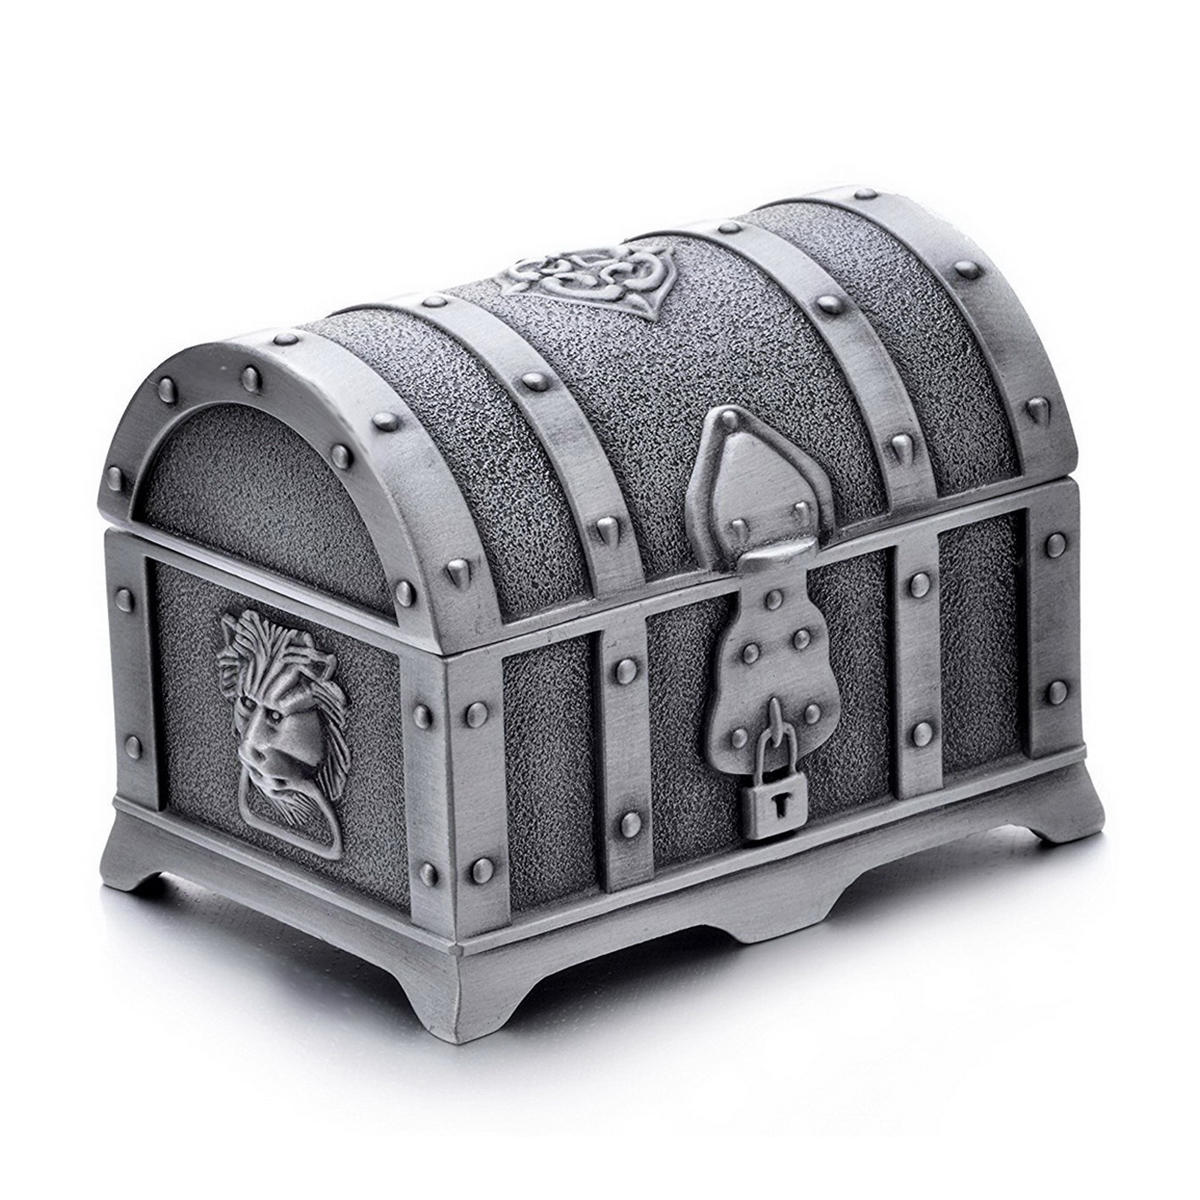 Alloy Dice Storage Box Jewelry Box Treasure Chest High-grade Luggage Box Coin Collecting Box фото